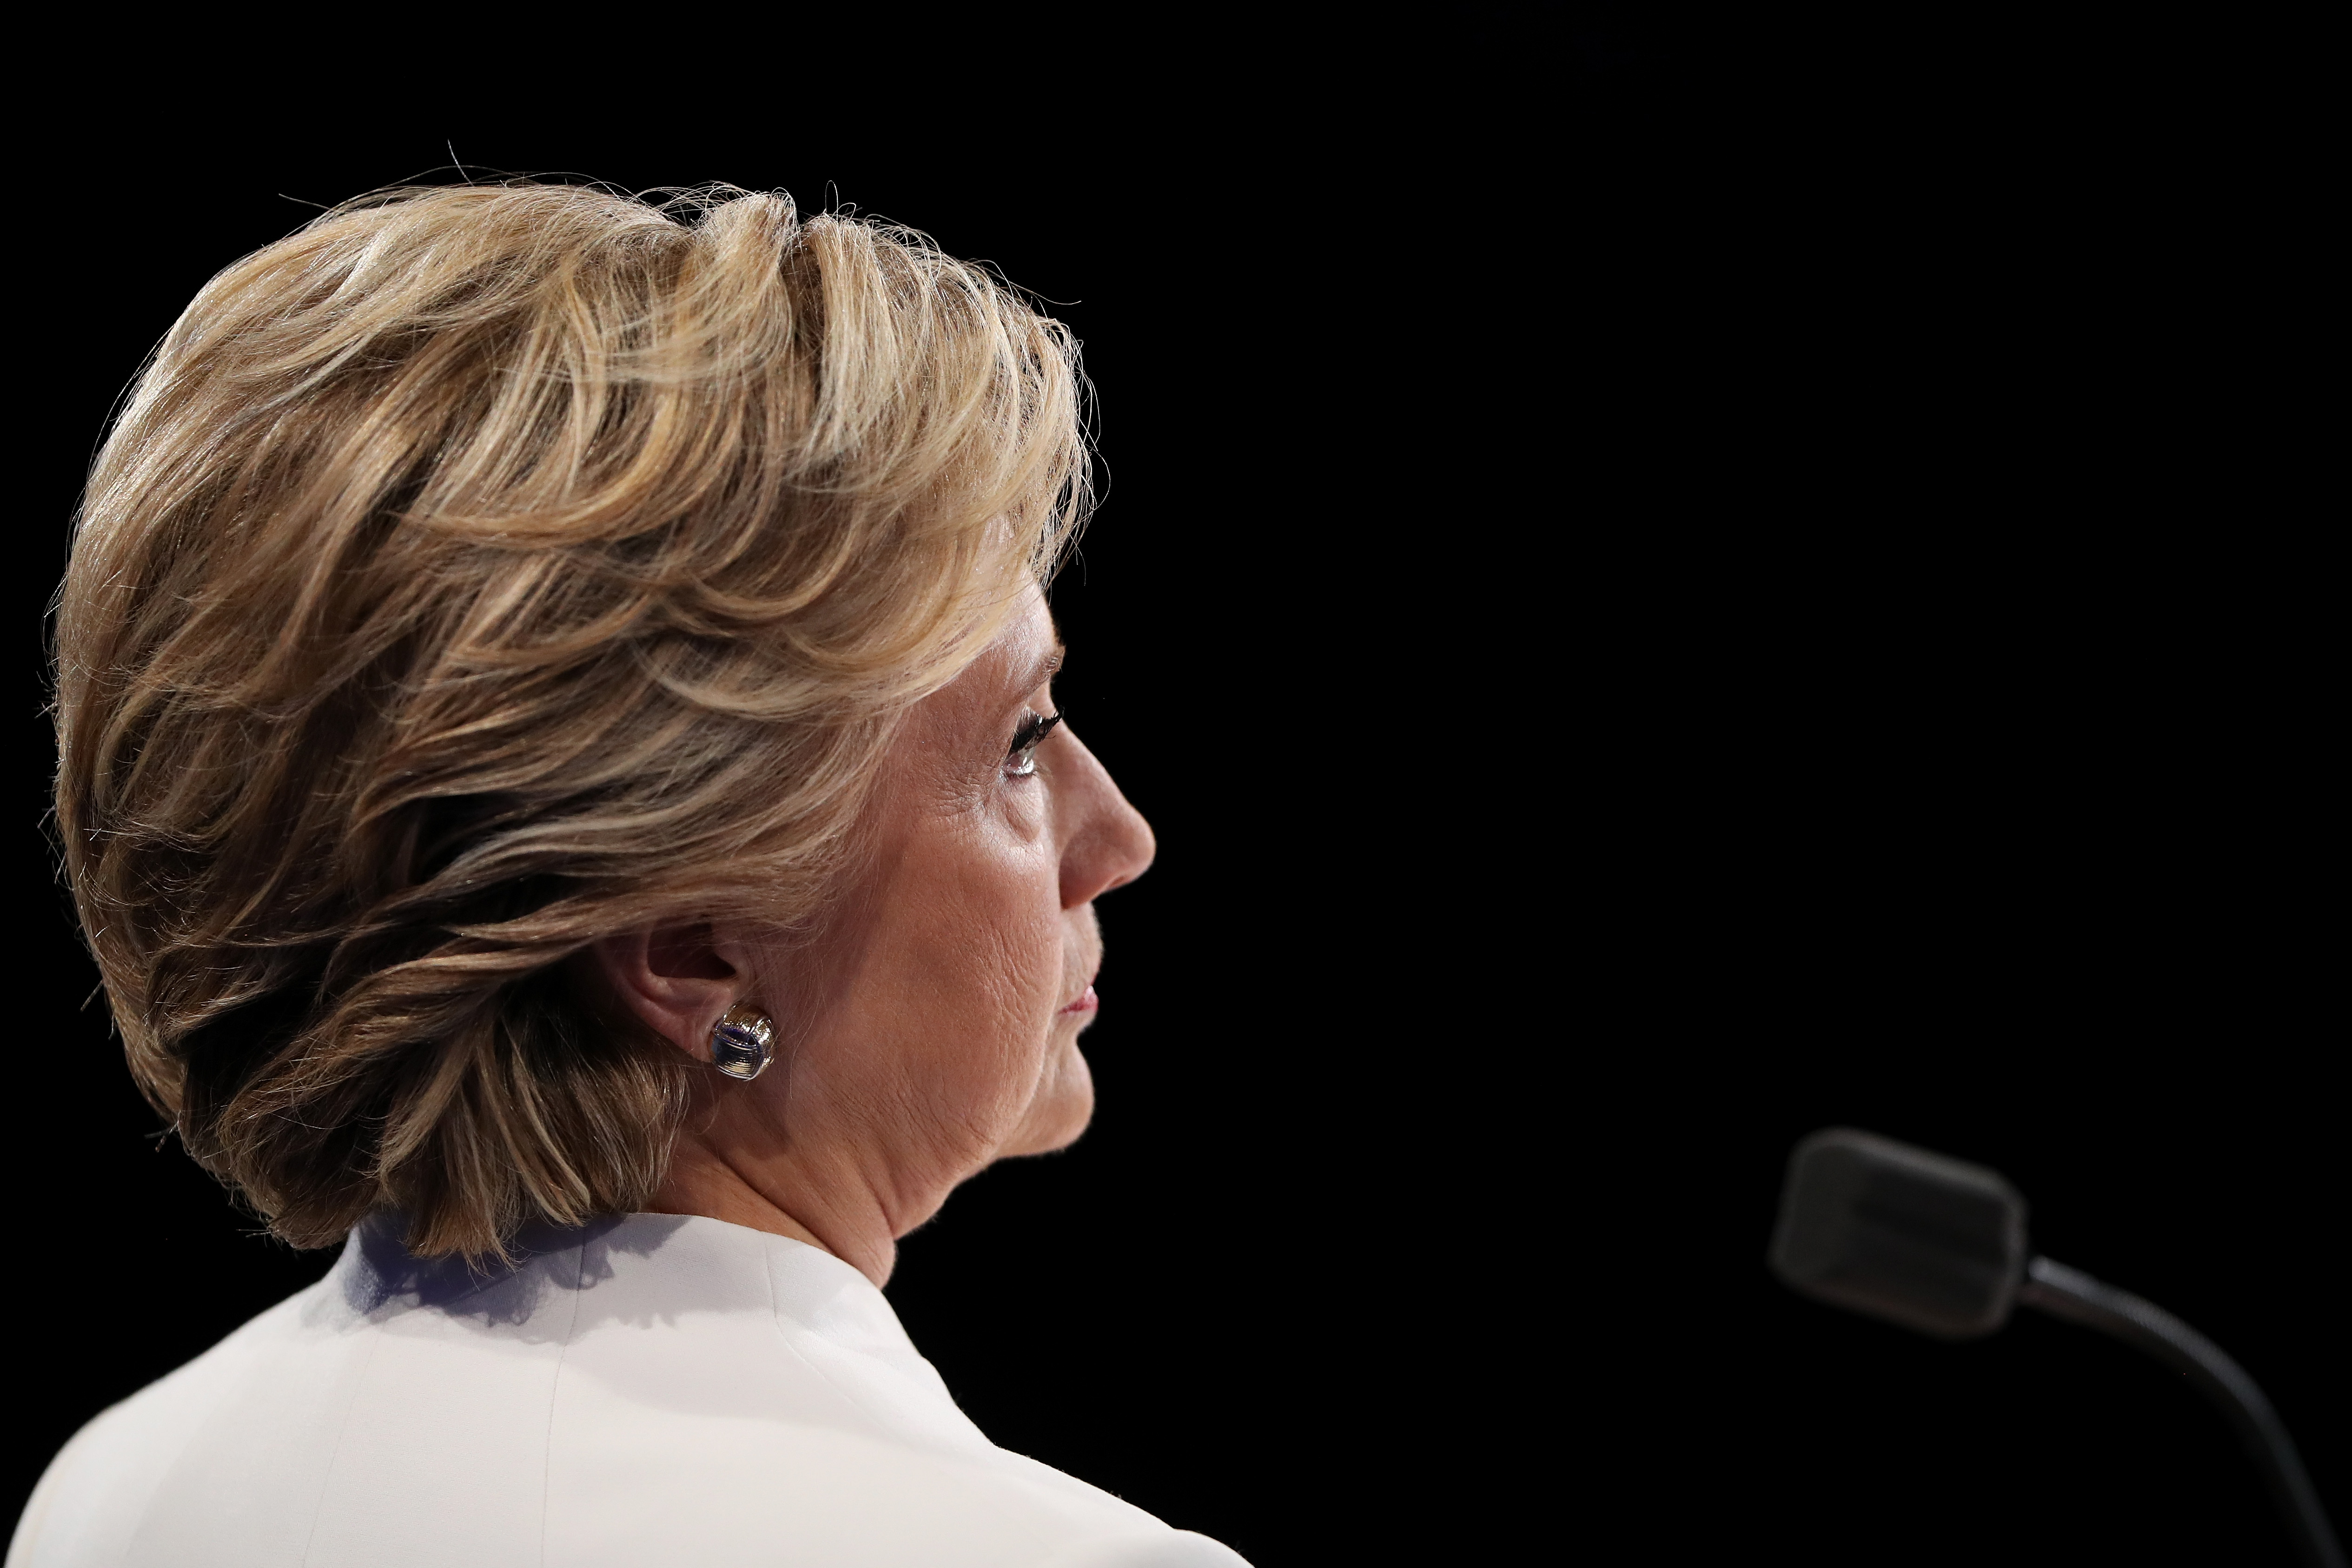 Democratic presidential nominee Hillary Clinton listens to Republican presidential nominee Donald Trump speak during the third U.S. presidential debate on October 19, 2016 in Las Vegas, Nevada.